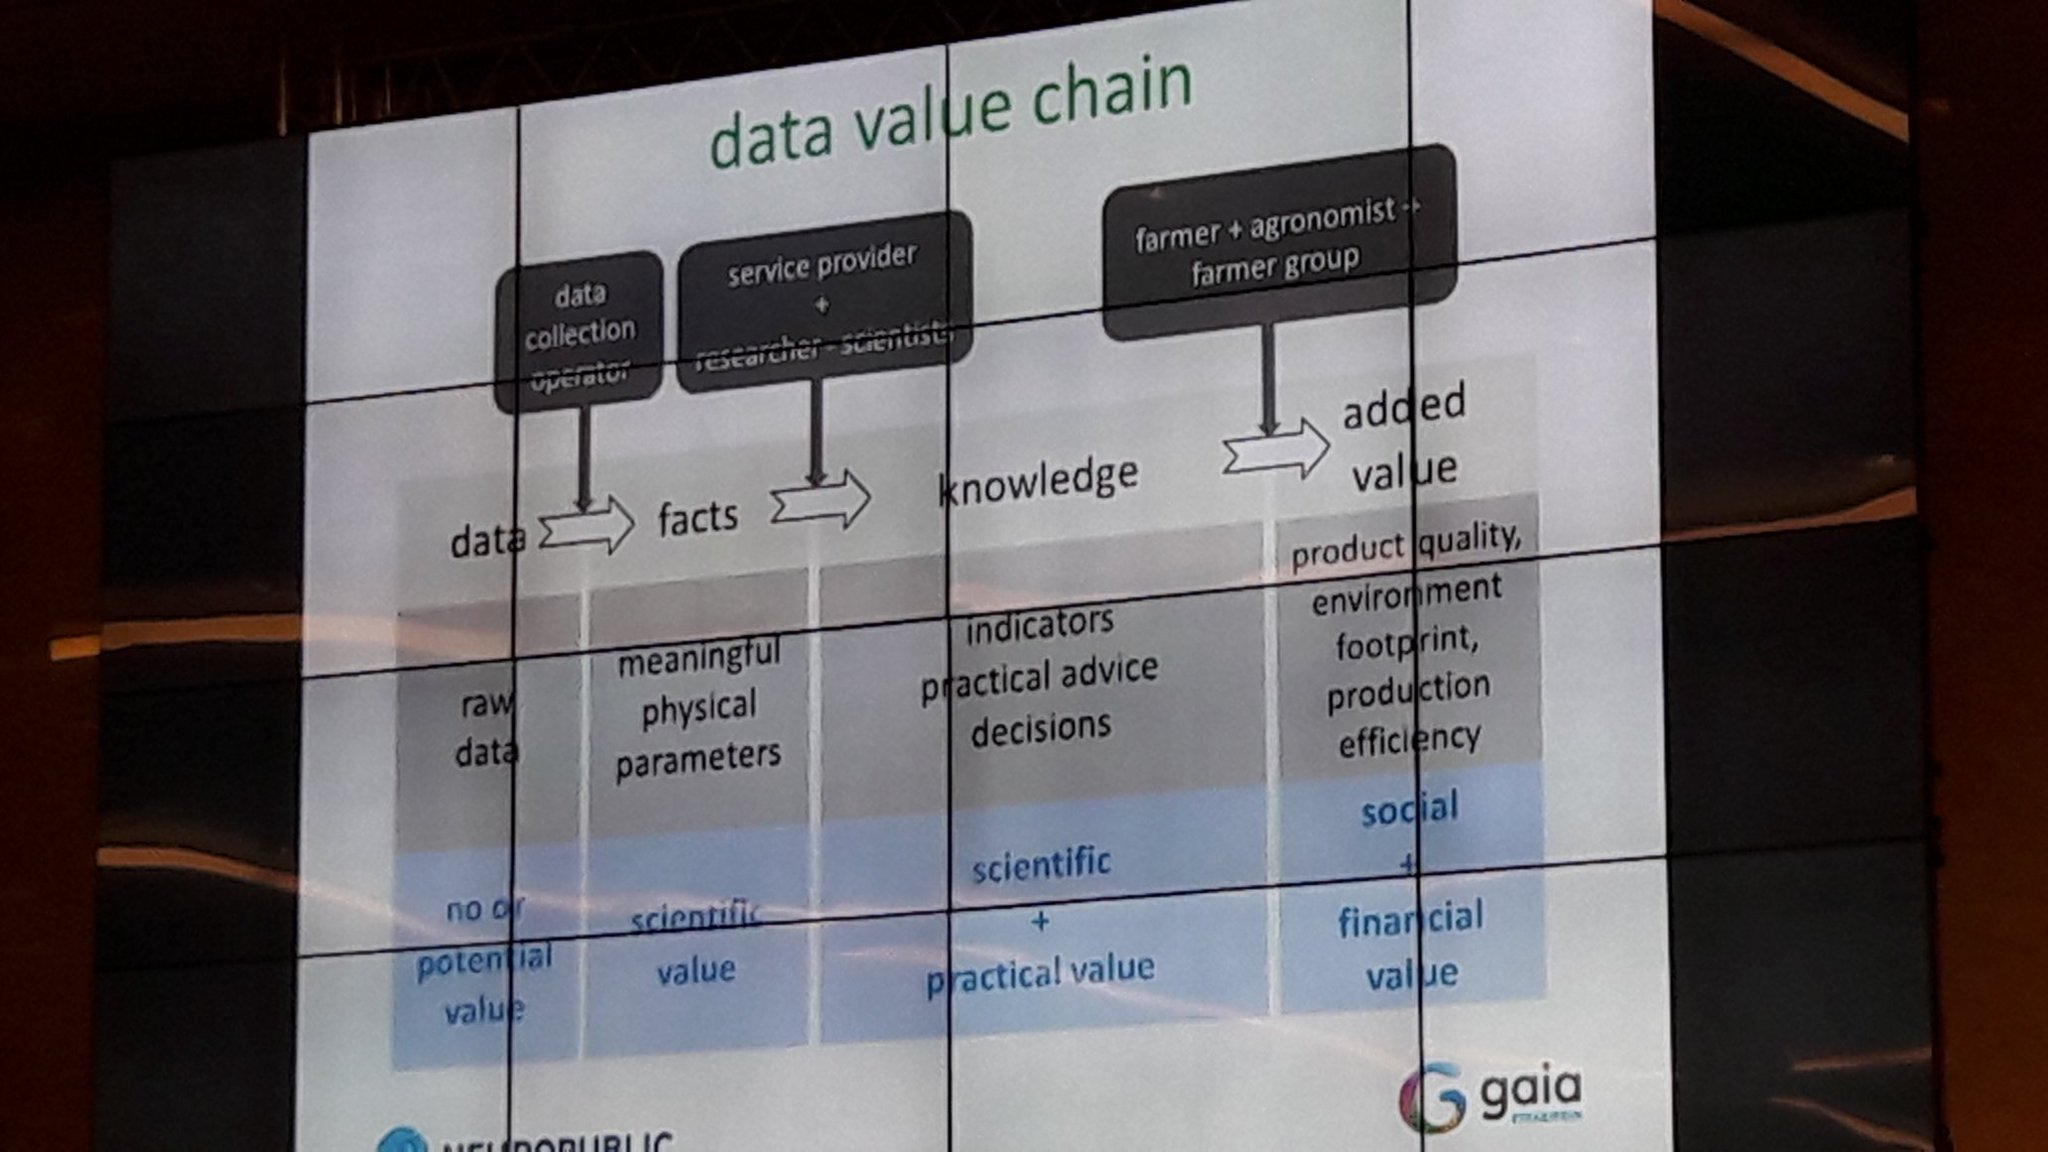 "@fchatz @Neuropublic ""From data to added value""  #agrifood chain #DynamicAgri https://t.co/eF62GF3ruW"